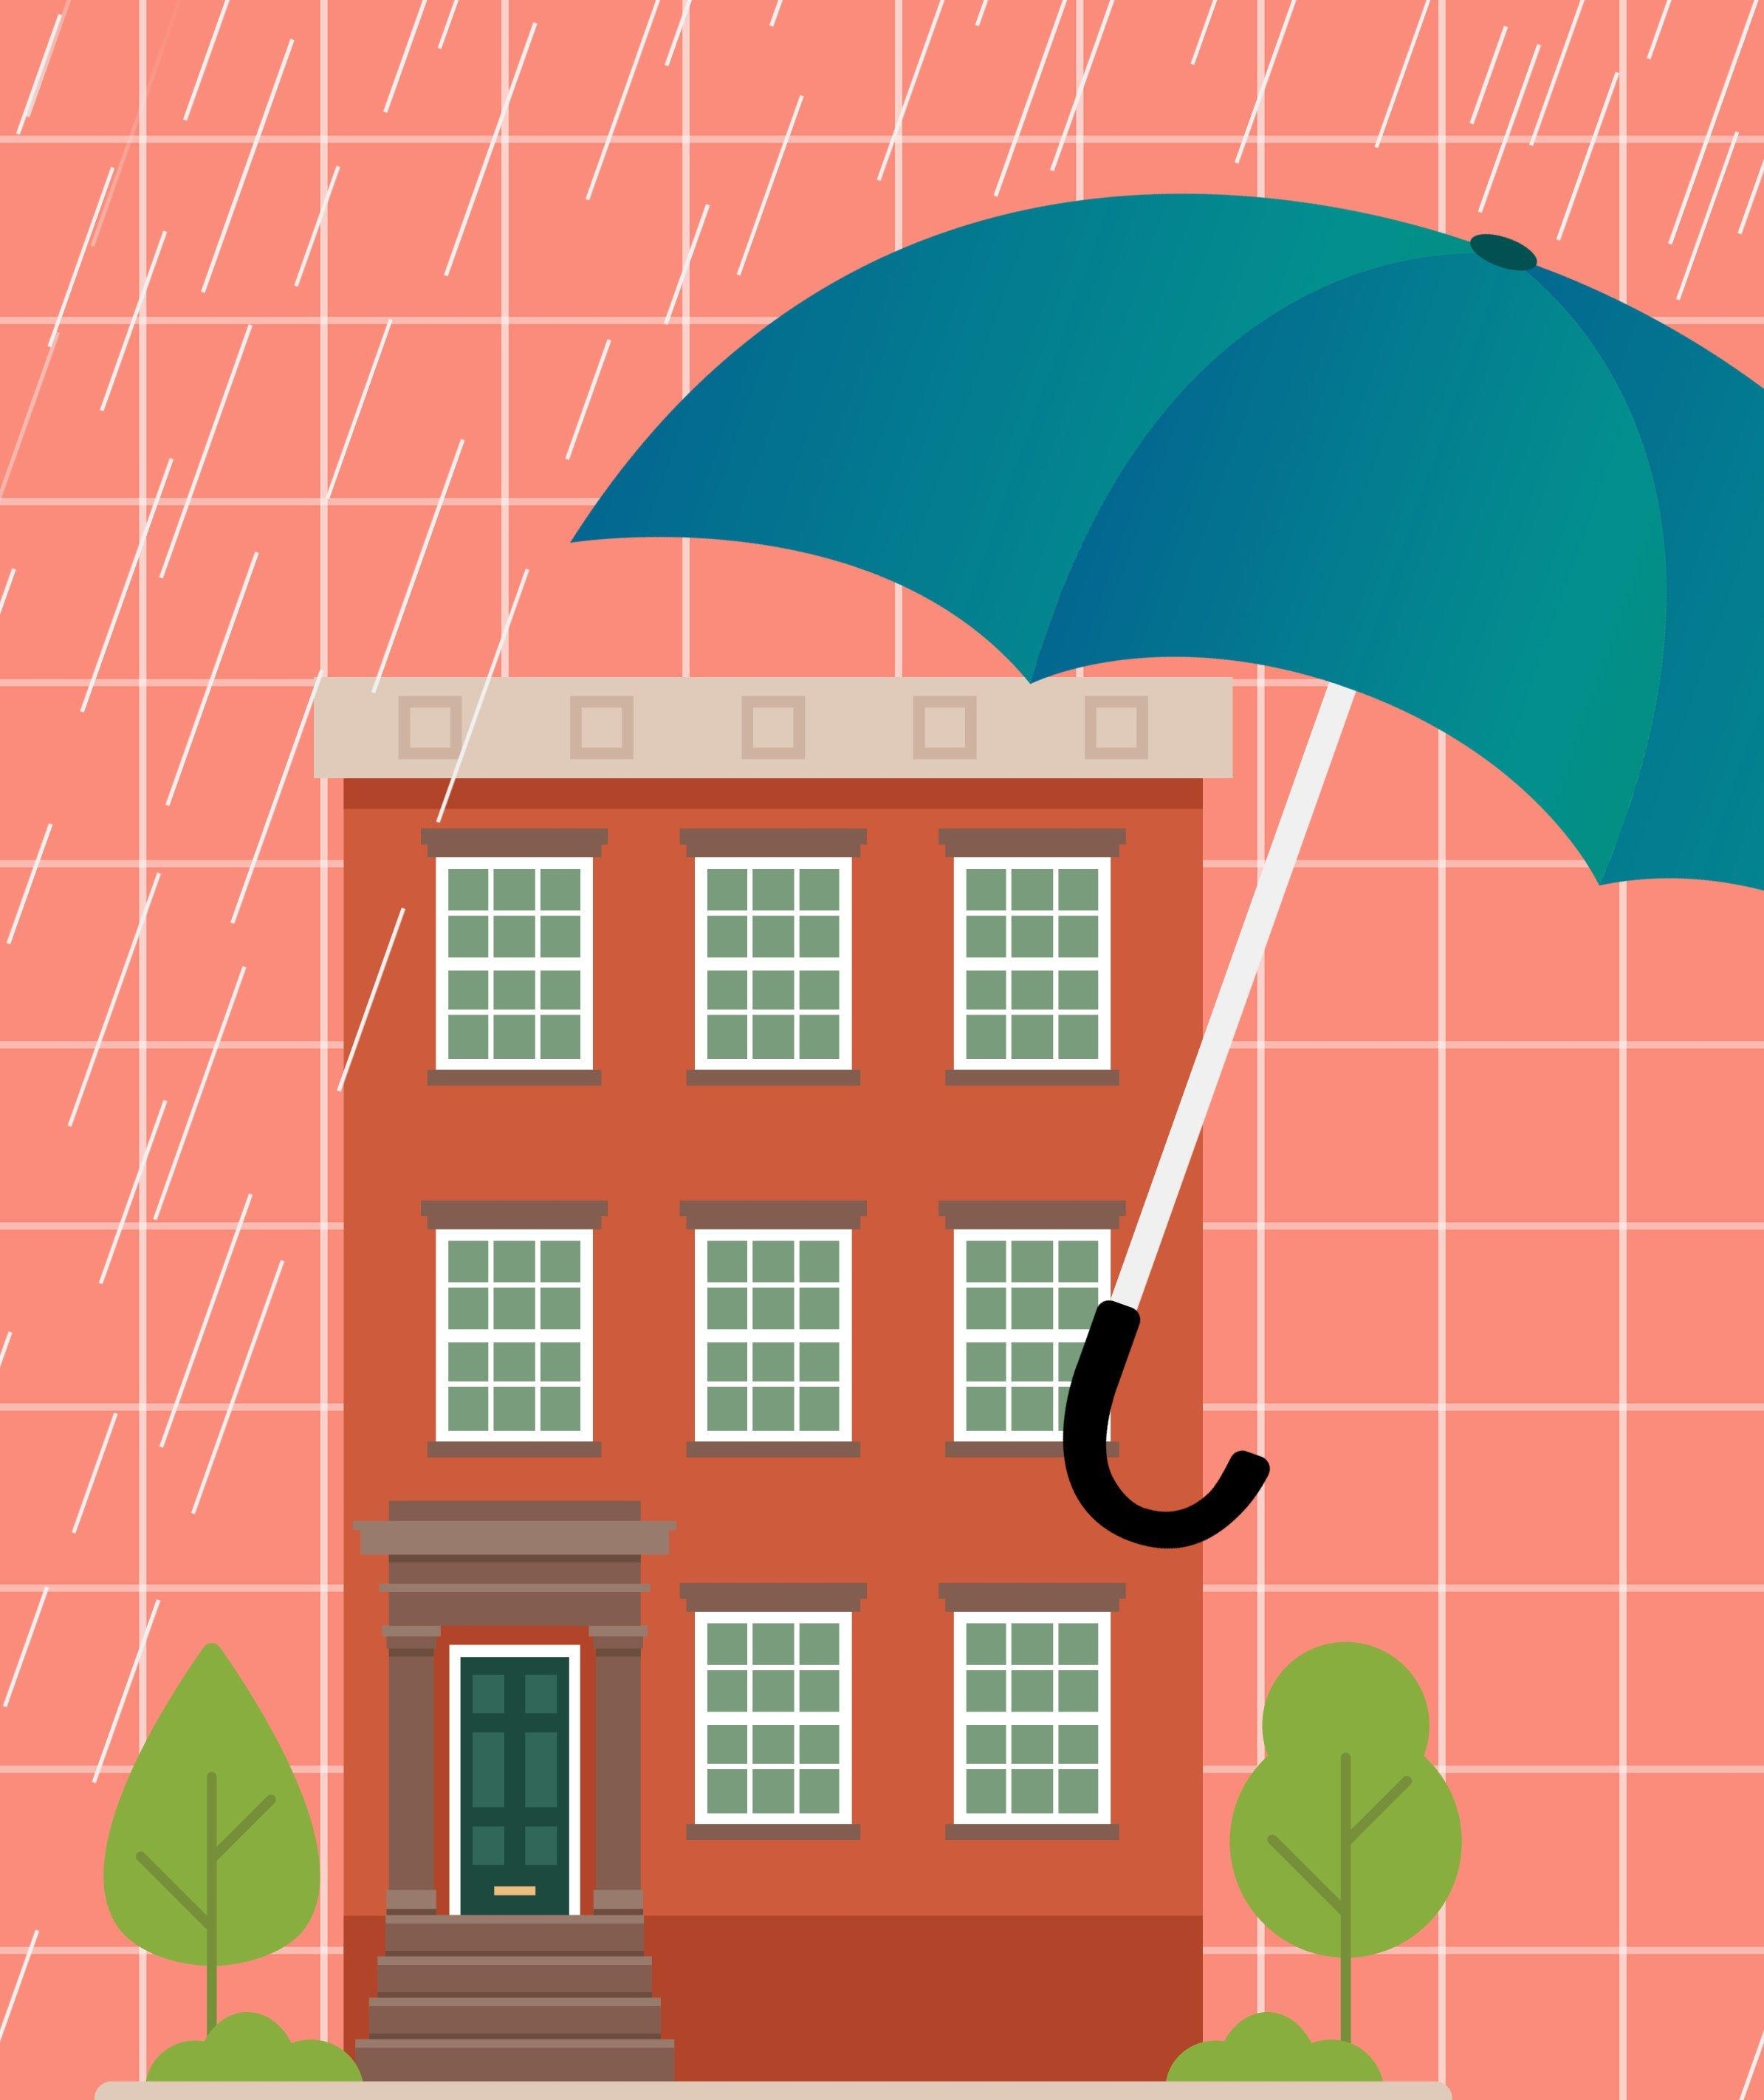 Renters Com: Yes, You Need Renters Insurance Even If Your Place Is